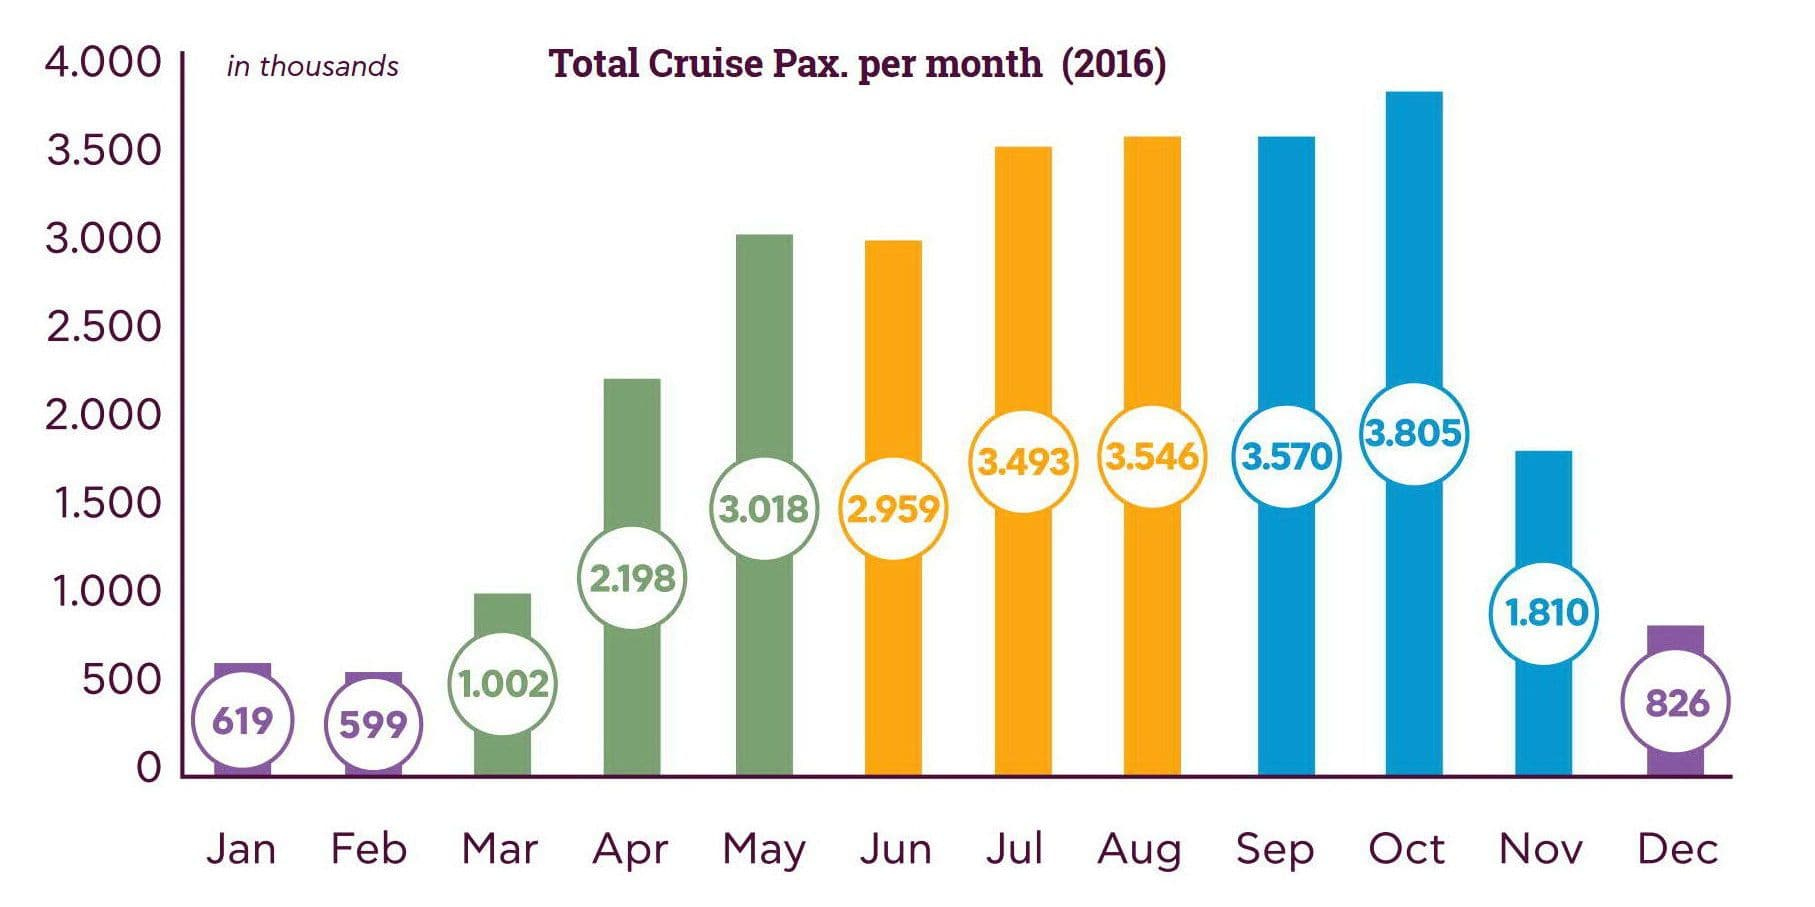 Total Cruise Pax. per month_2016